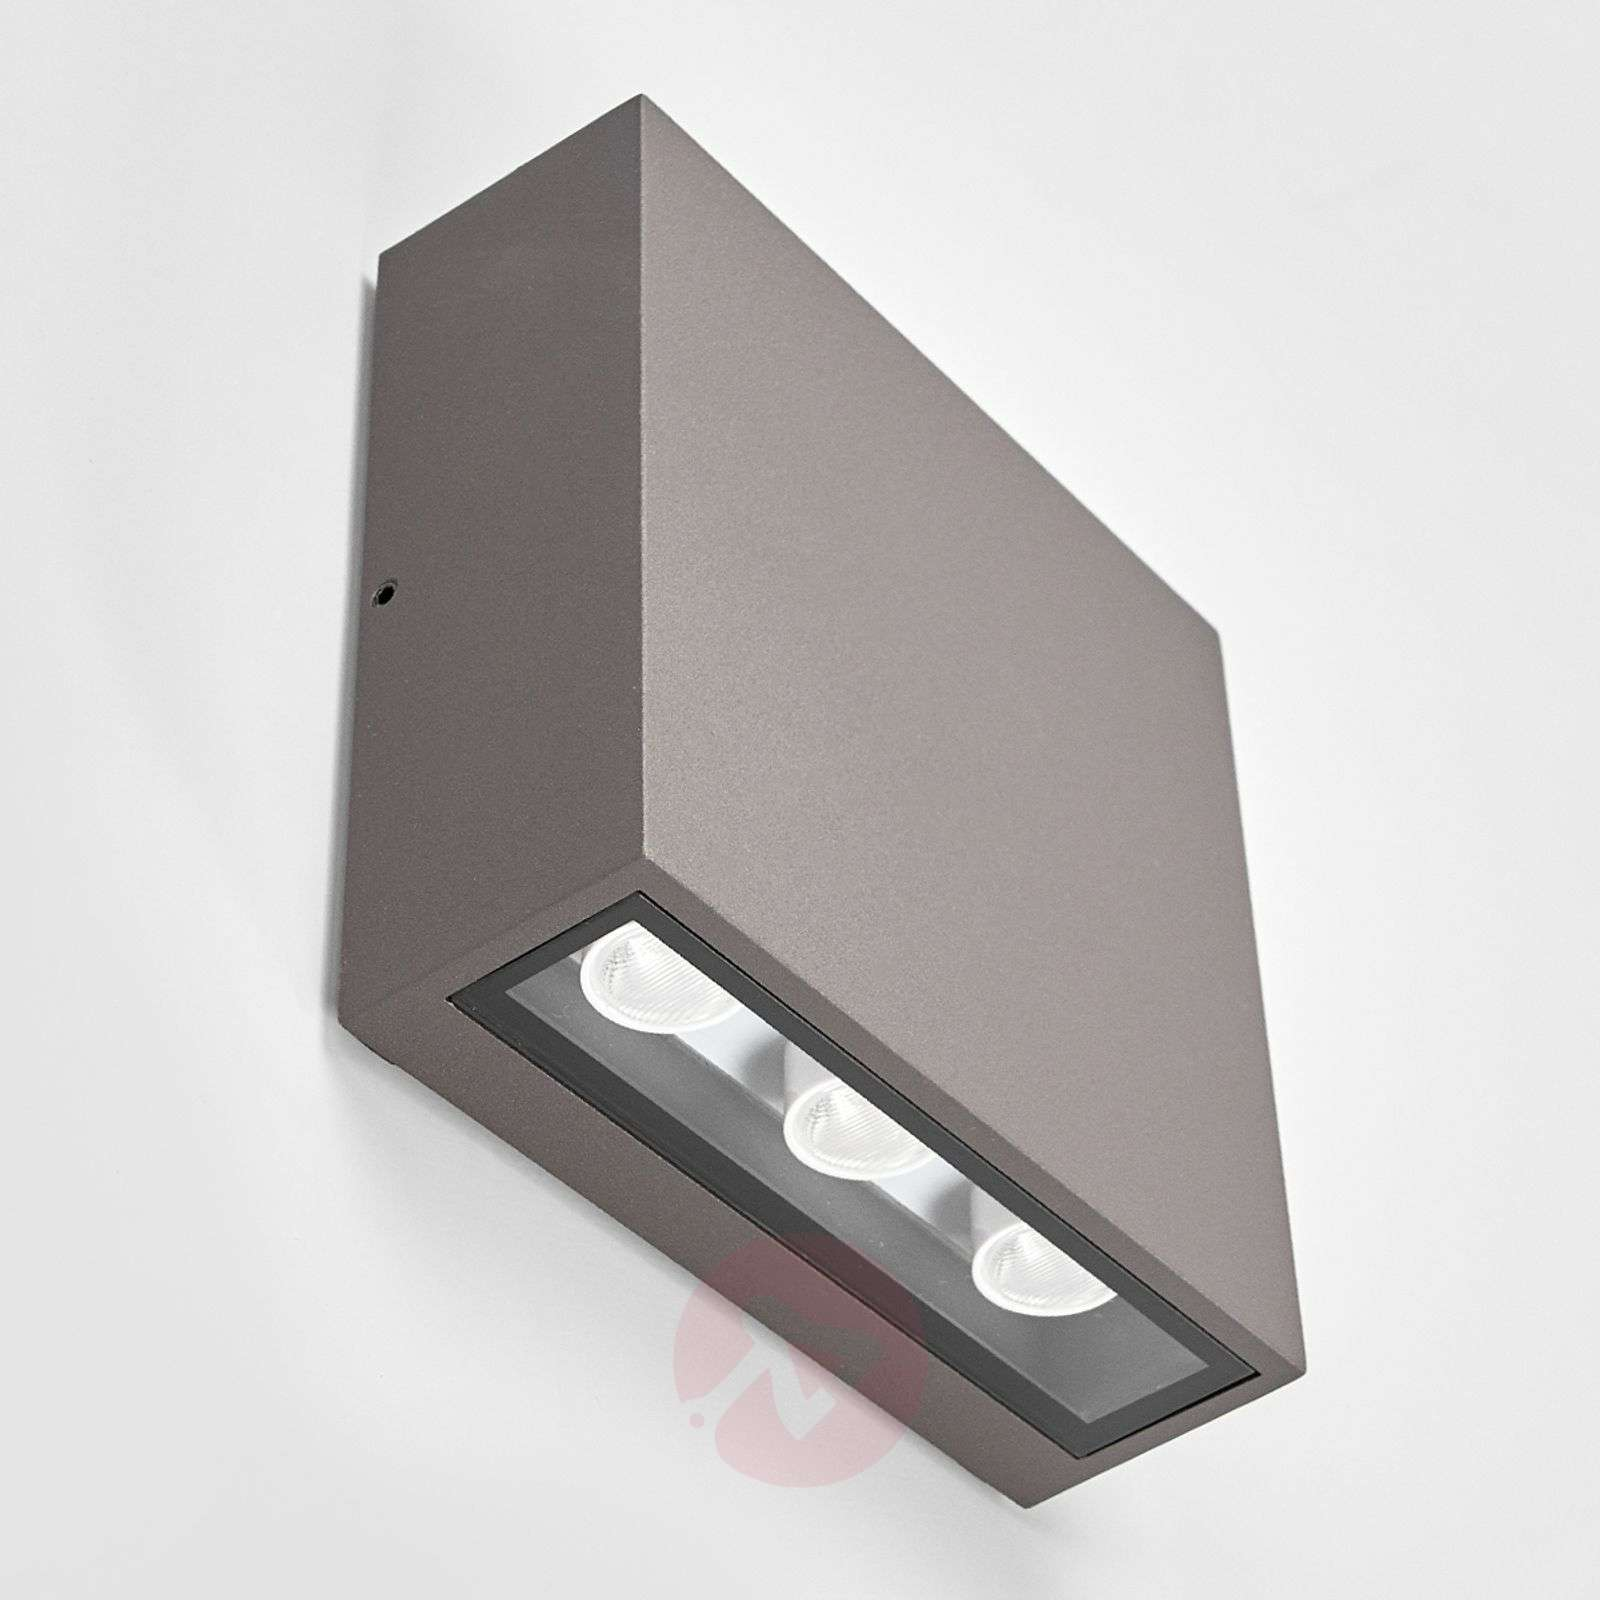 Square led outdoor wall light trixy graphite grey lights square led outdoor wall light trixy graphite grey 9619075 01 aloadofball Gallery